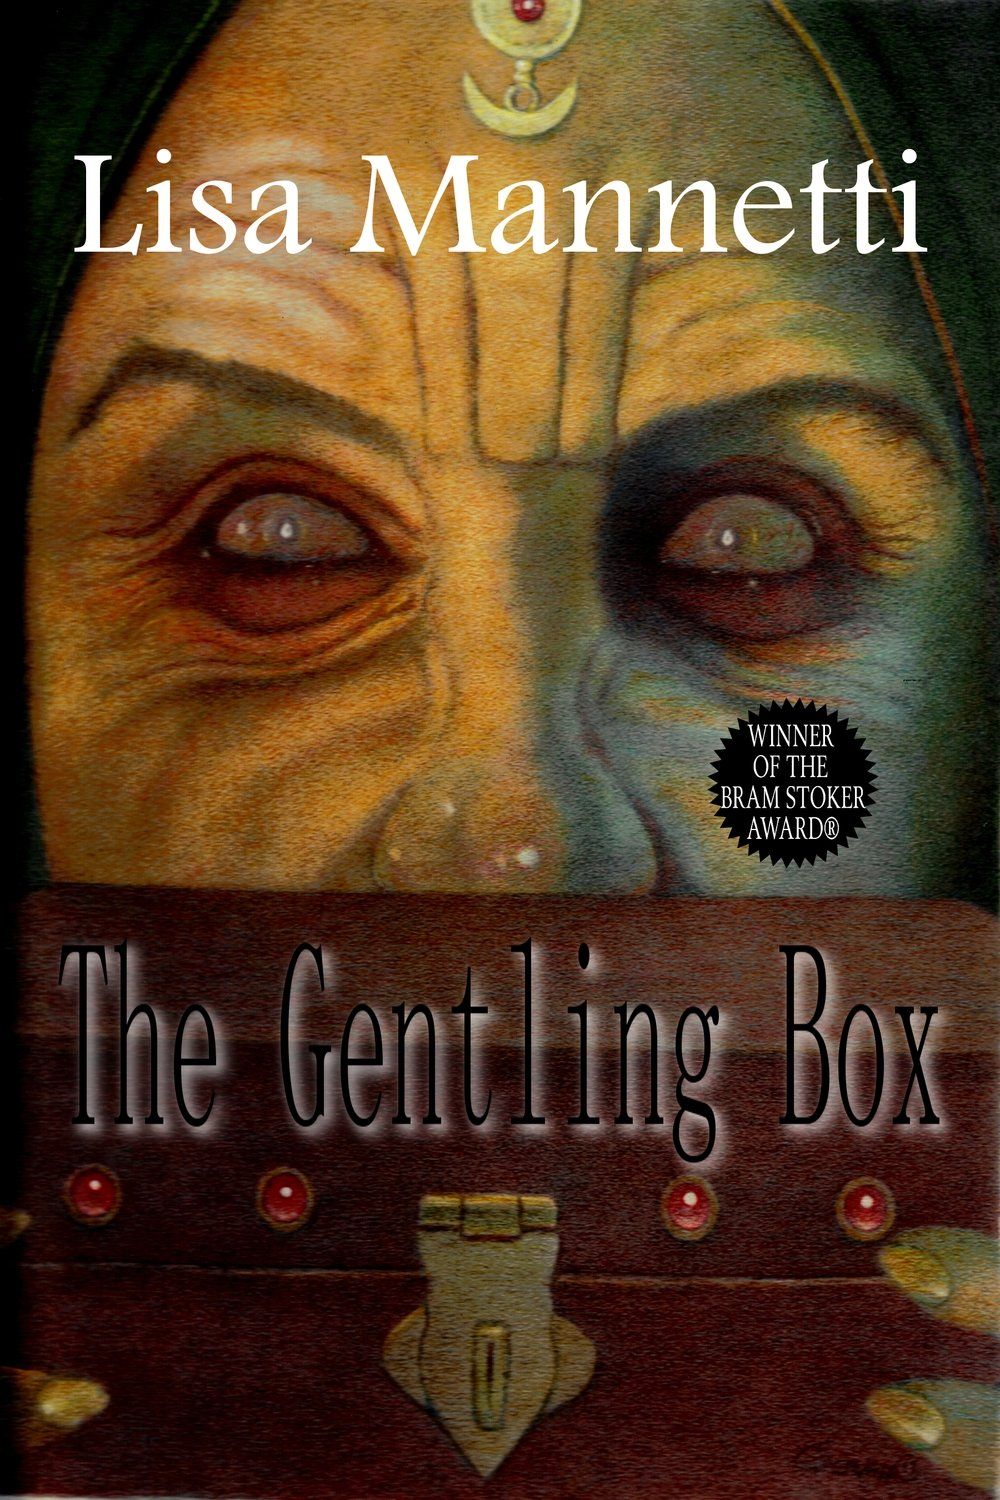 The Gentling Box by Lisa Mannetti (eBook edition)